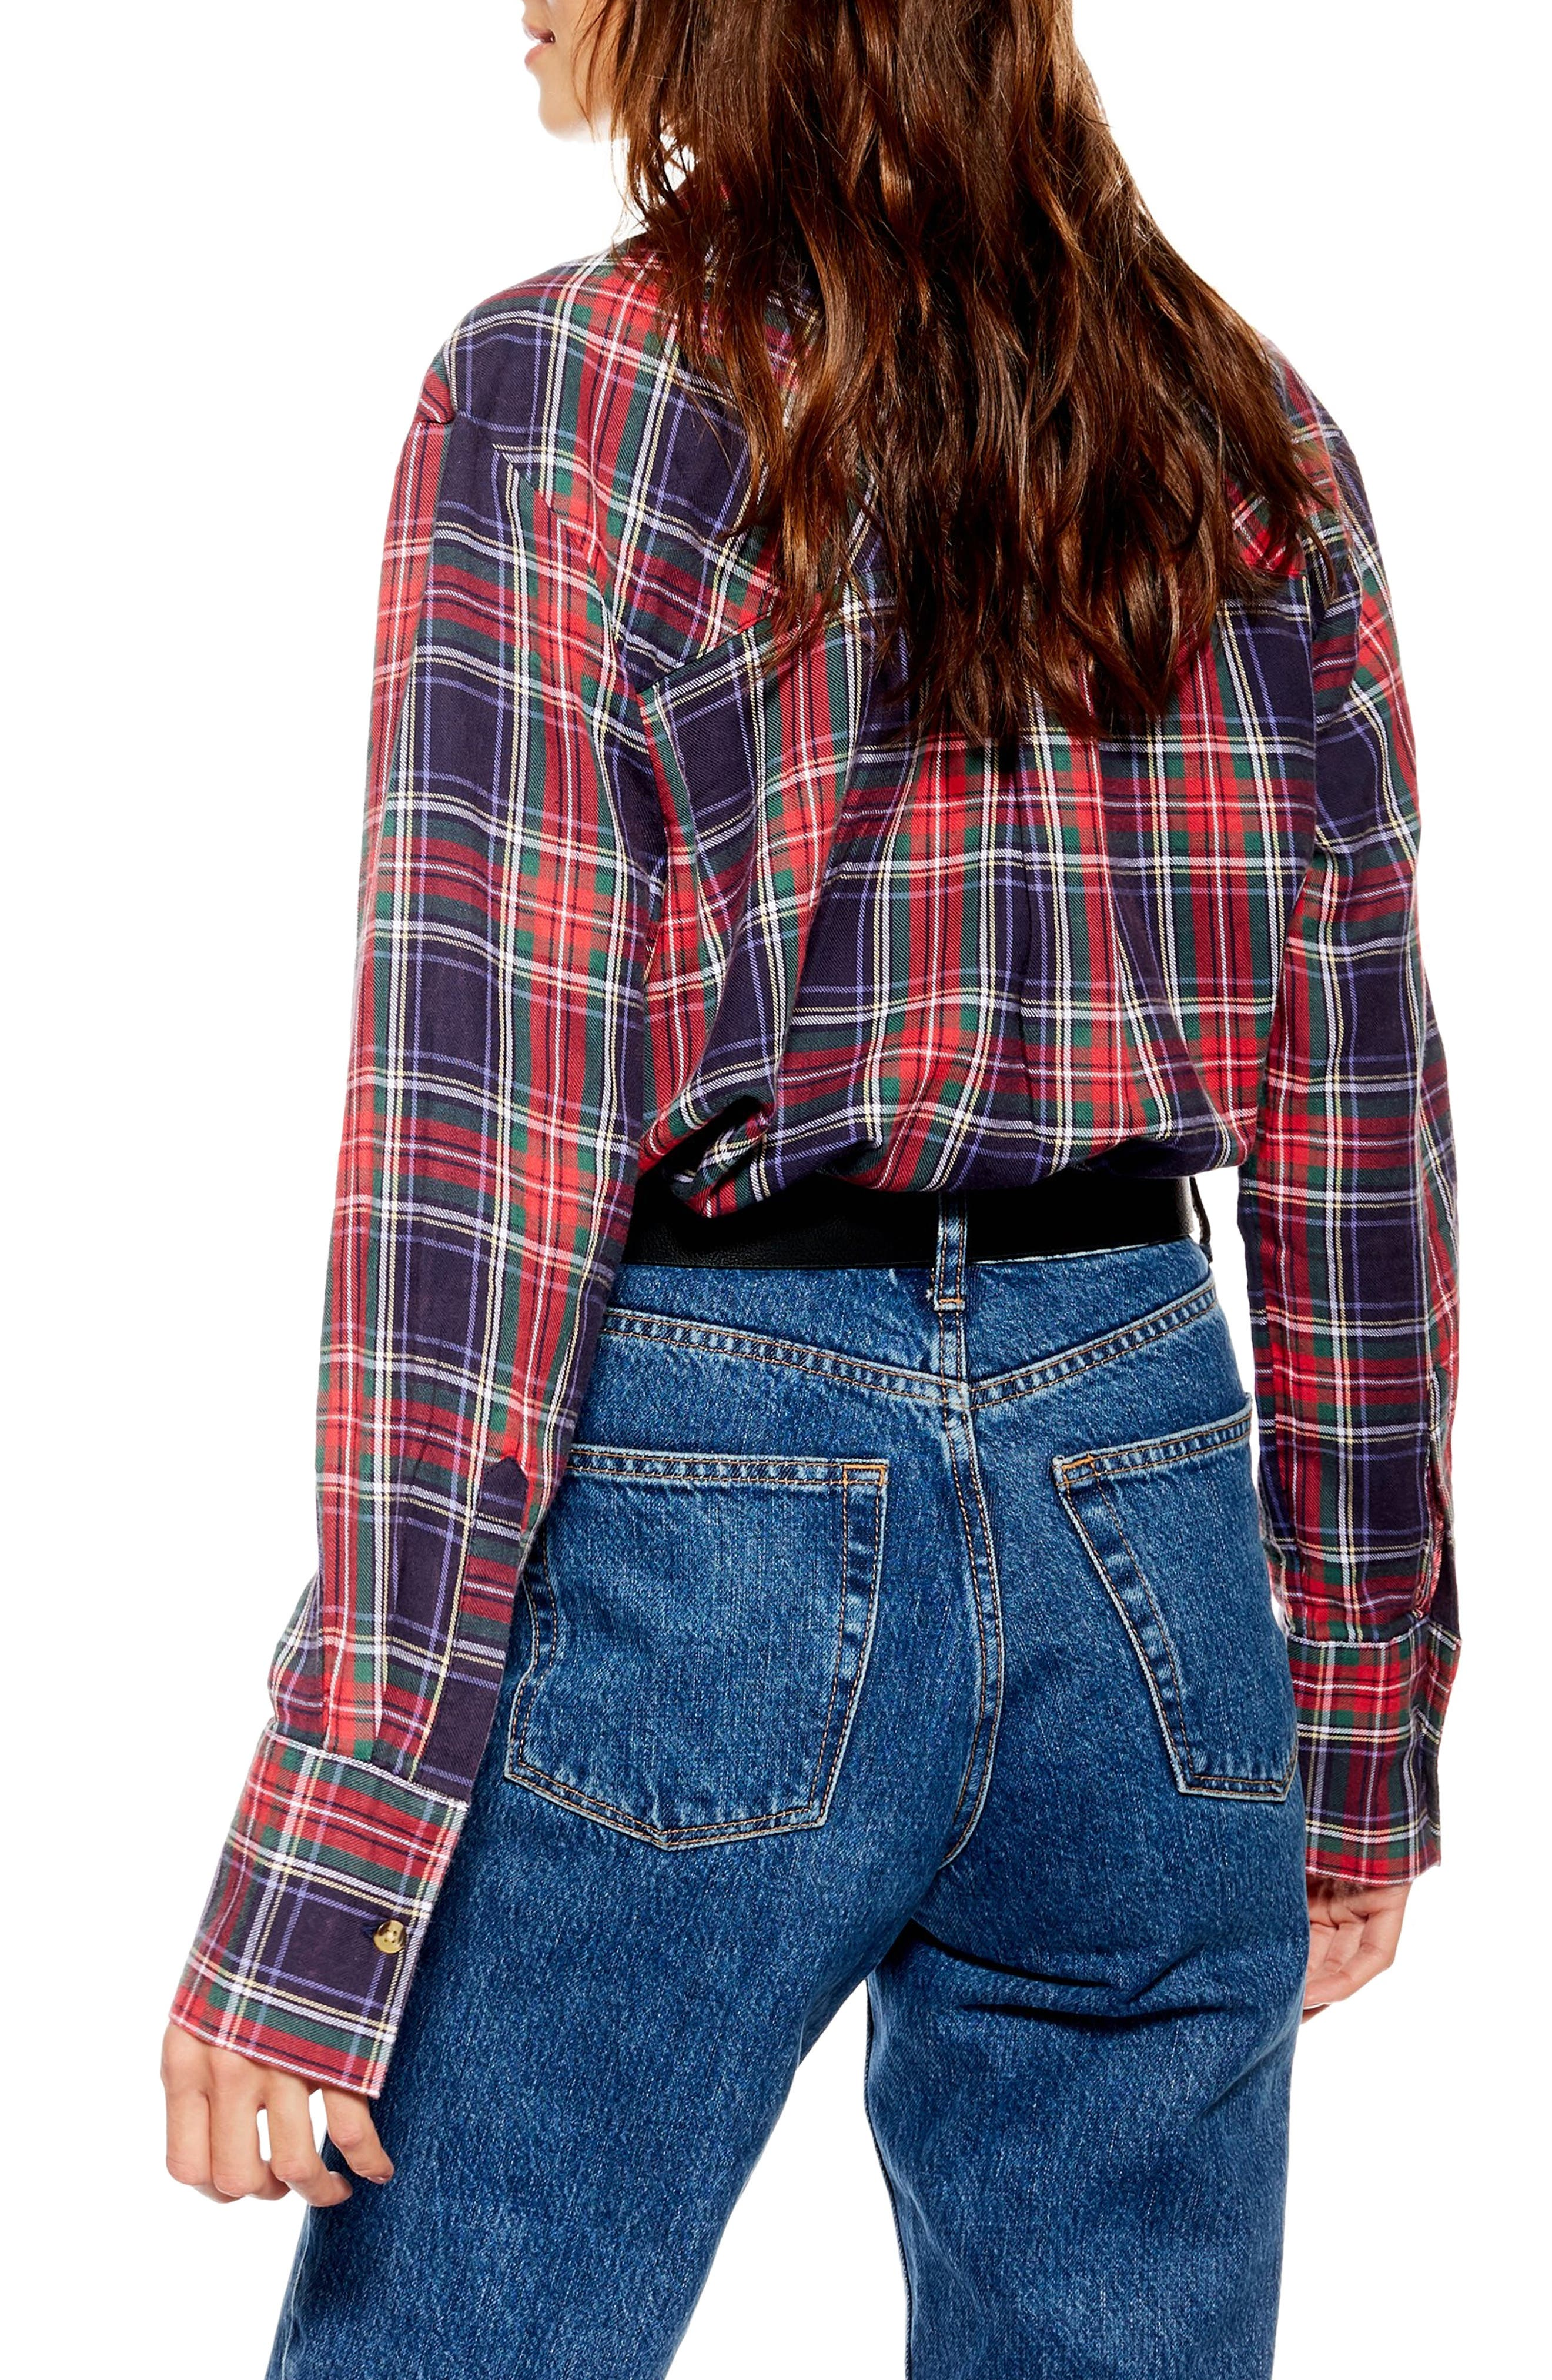 Pacey Washed Check Plaid Shirt,                             Alternate thumbnail 2, color,                             NAVY BLUE MULTI